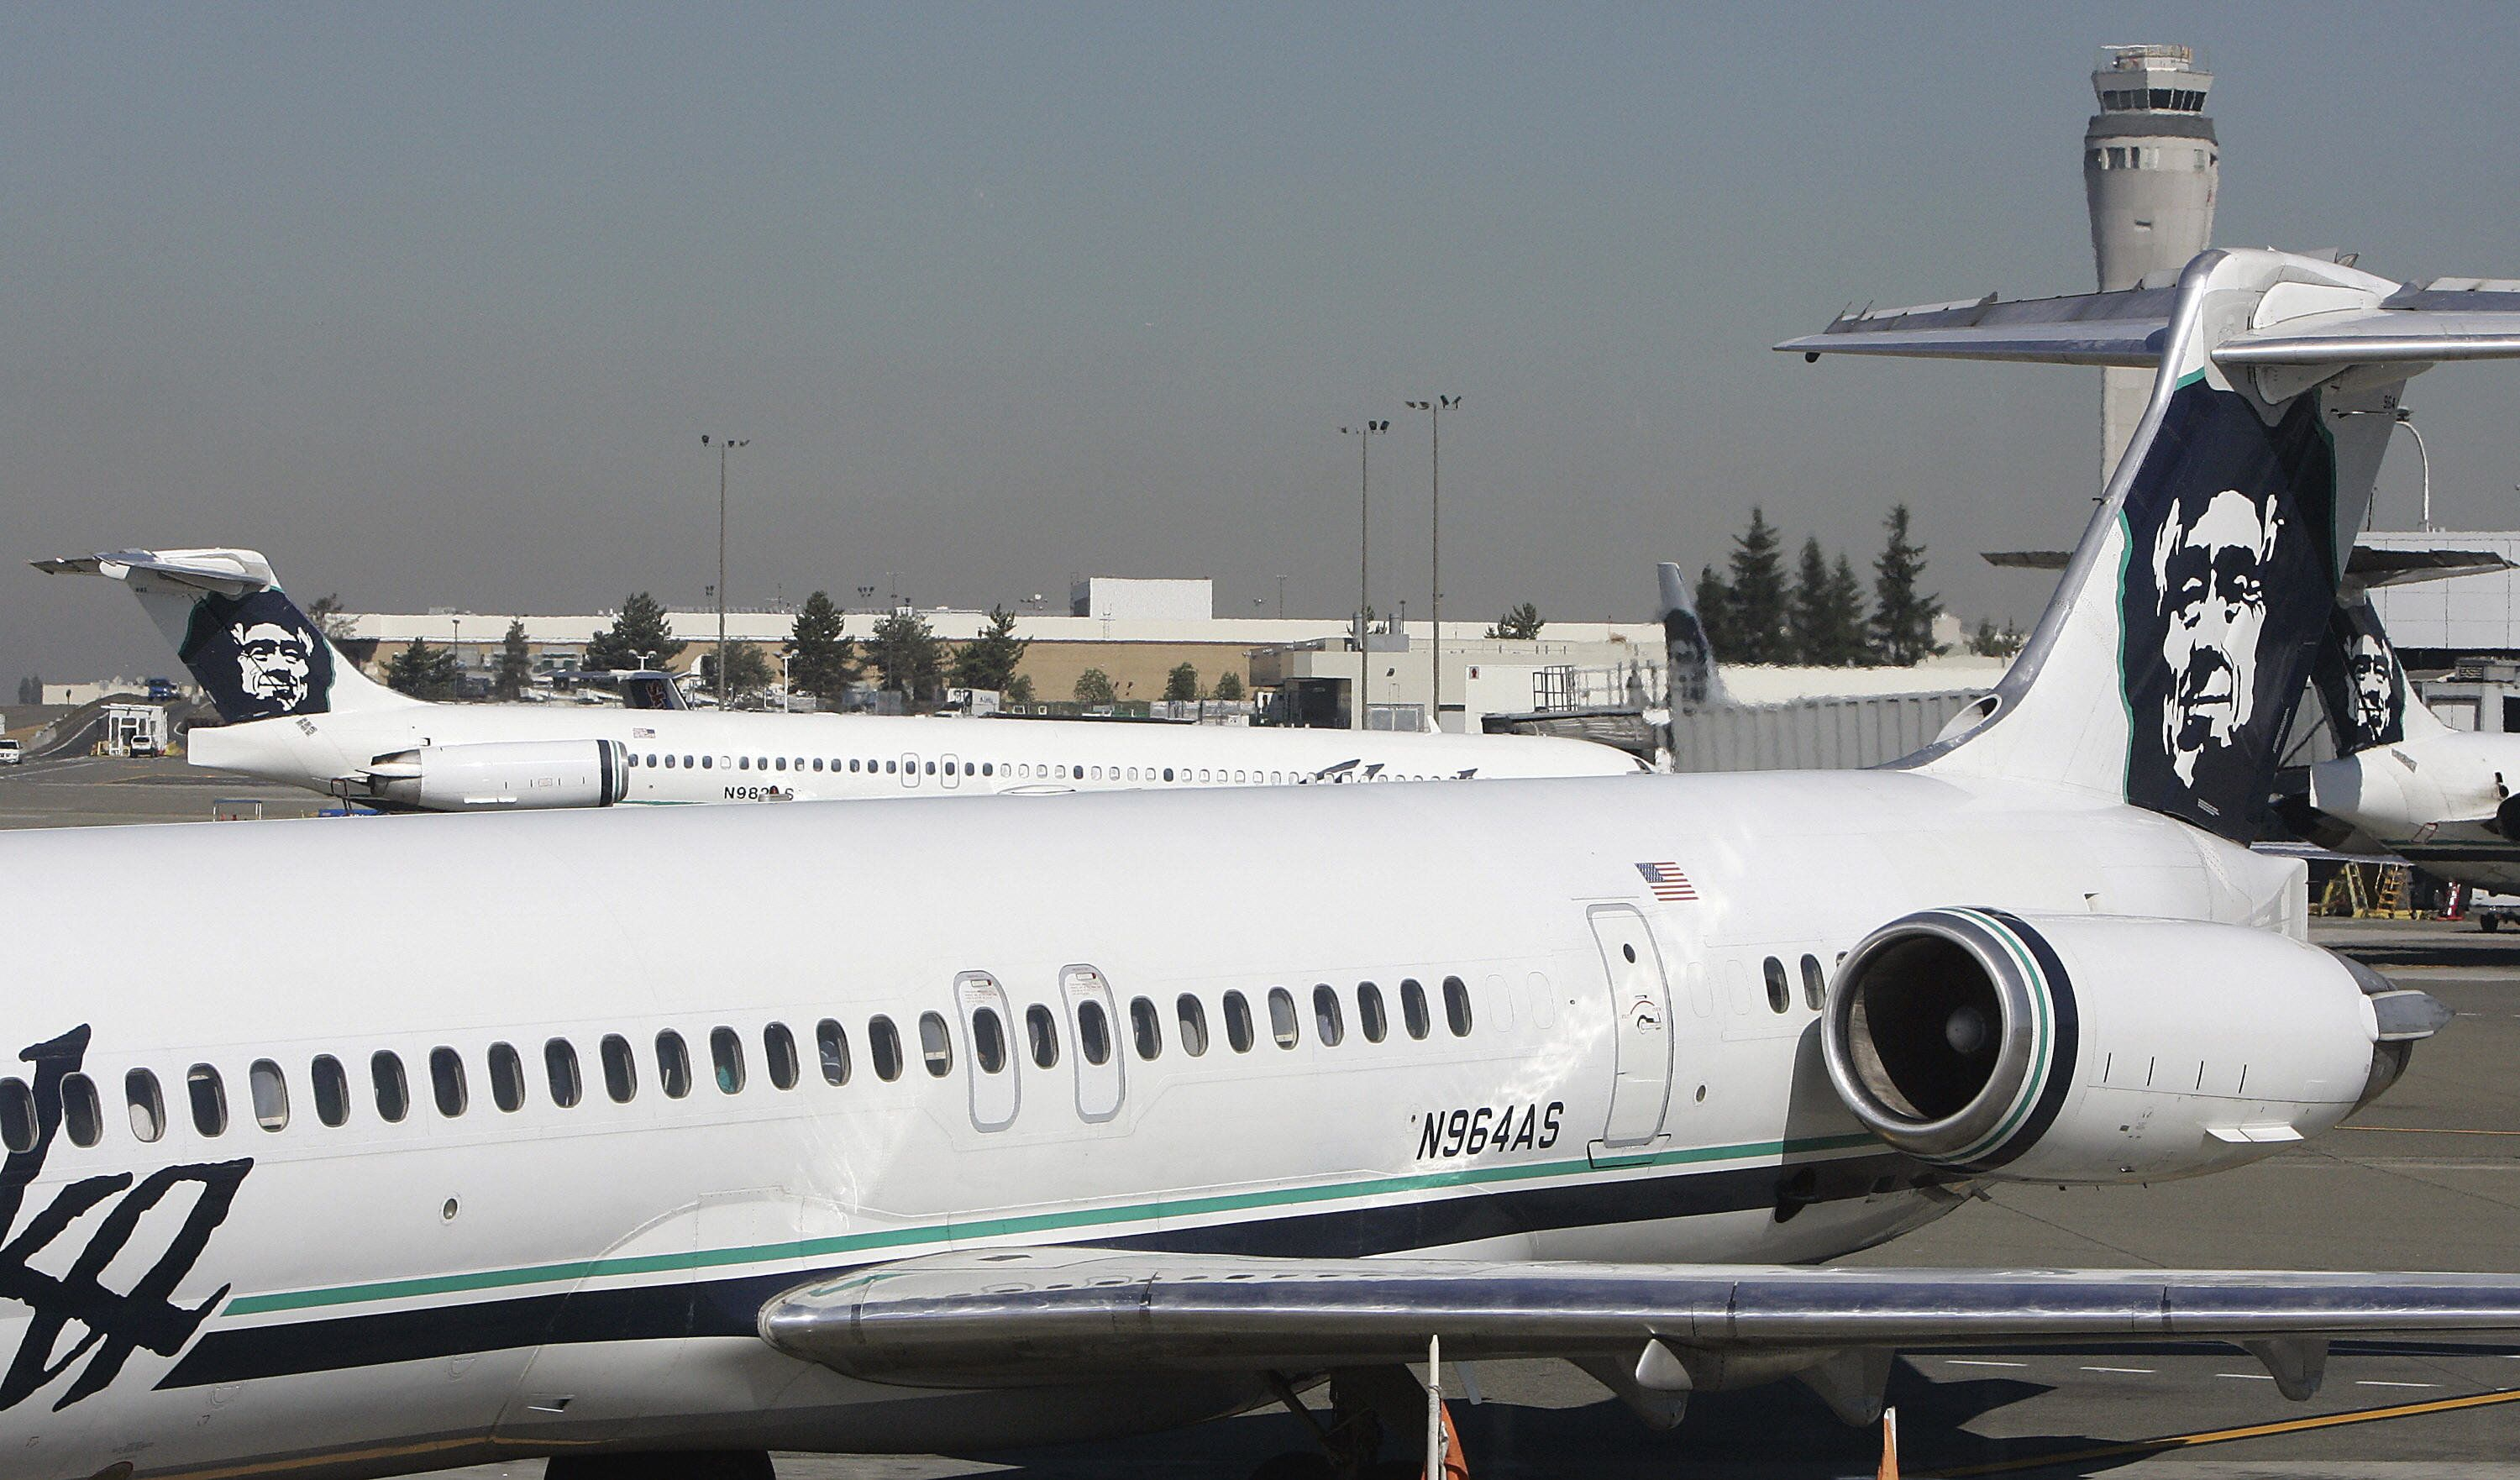 Commercial airliner is 'hijacked from Seattle-Tacoma Airport', say reports